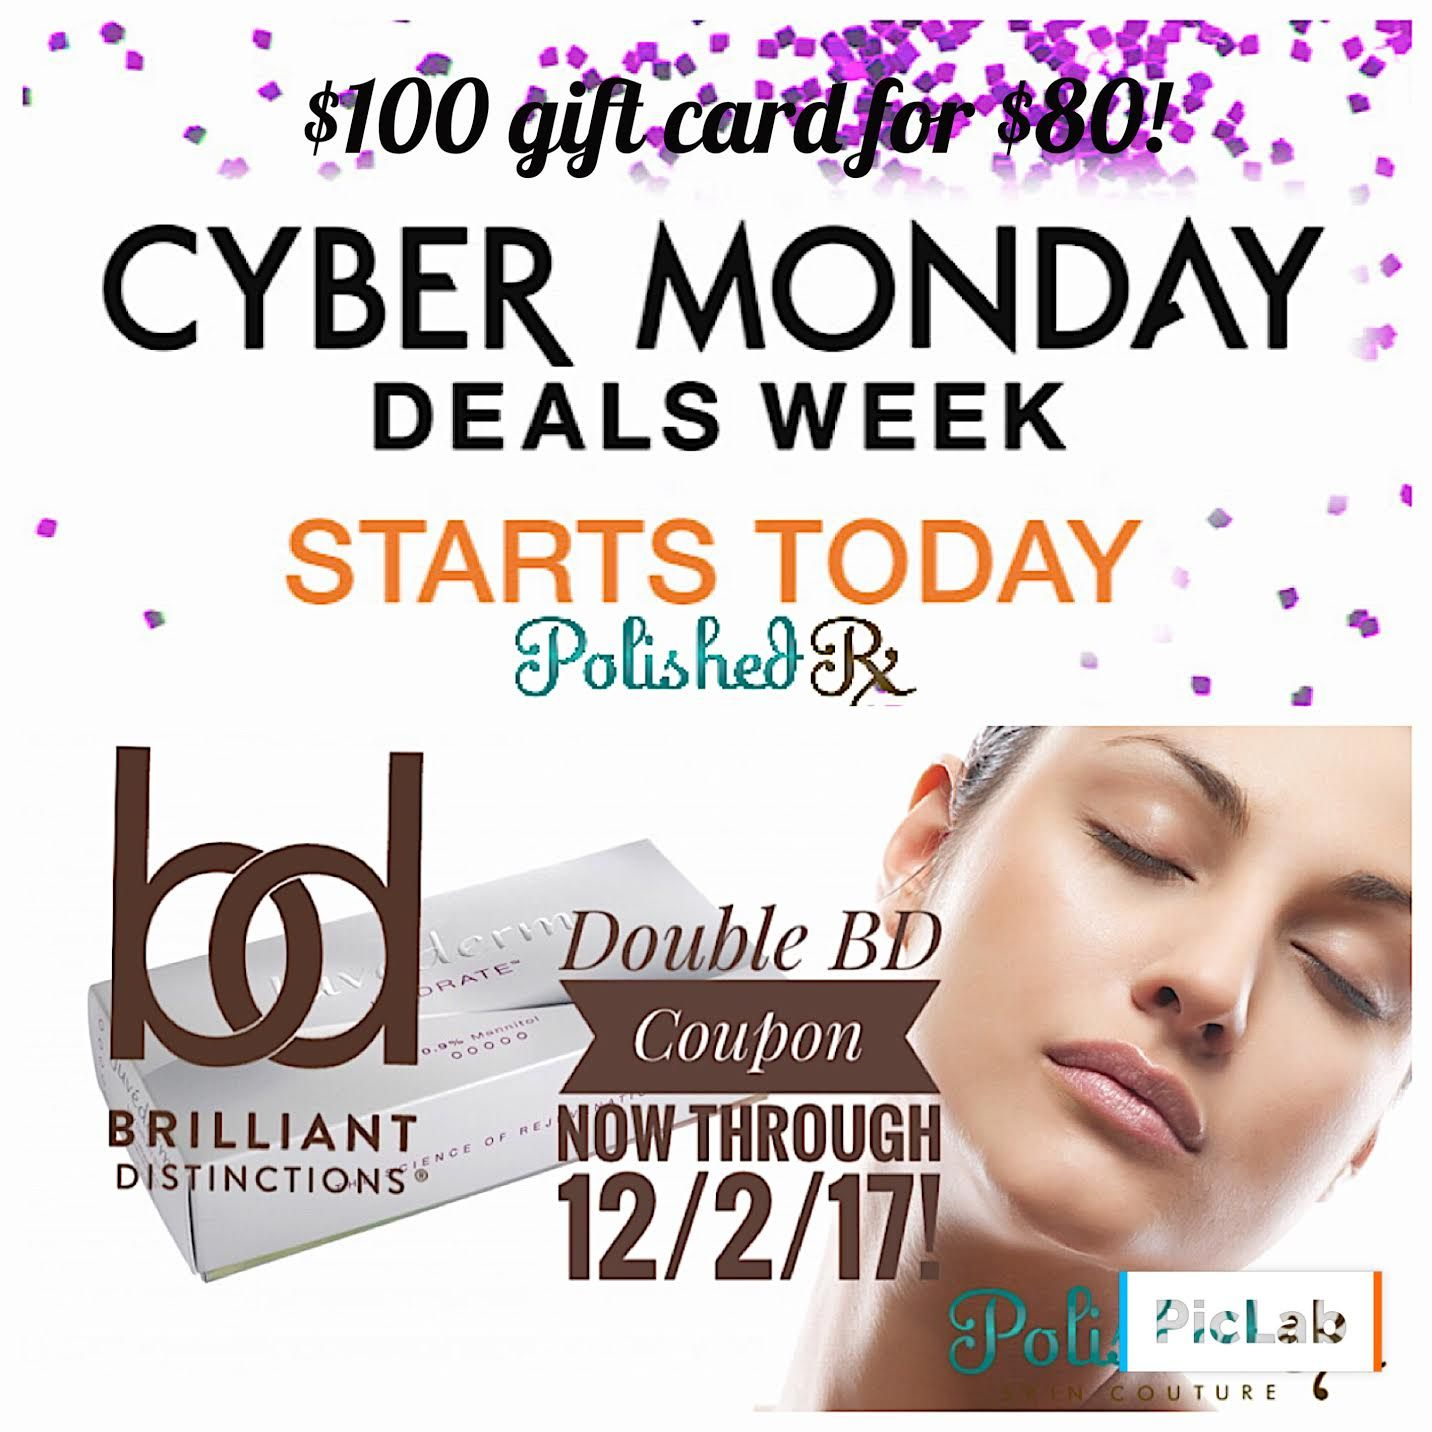 Holidays are coming! $100 Gift Card for ONLY $80!* Get up to